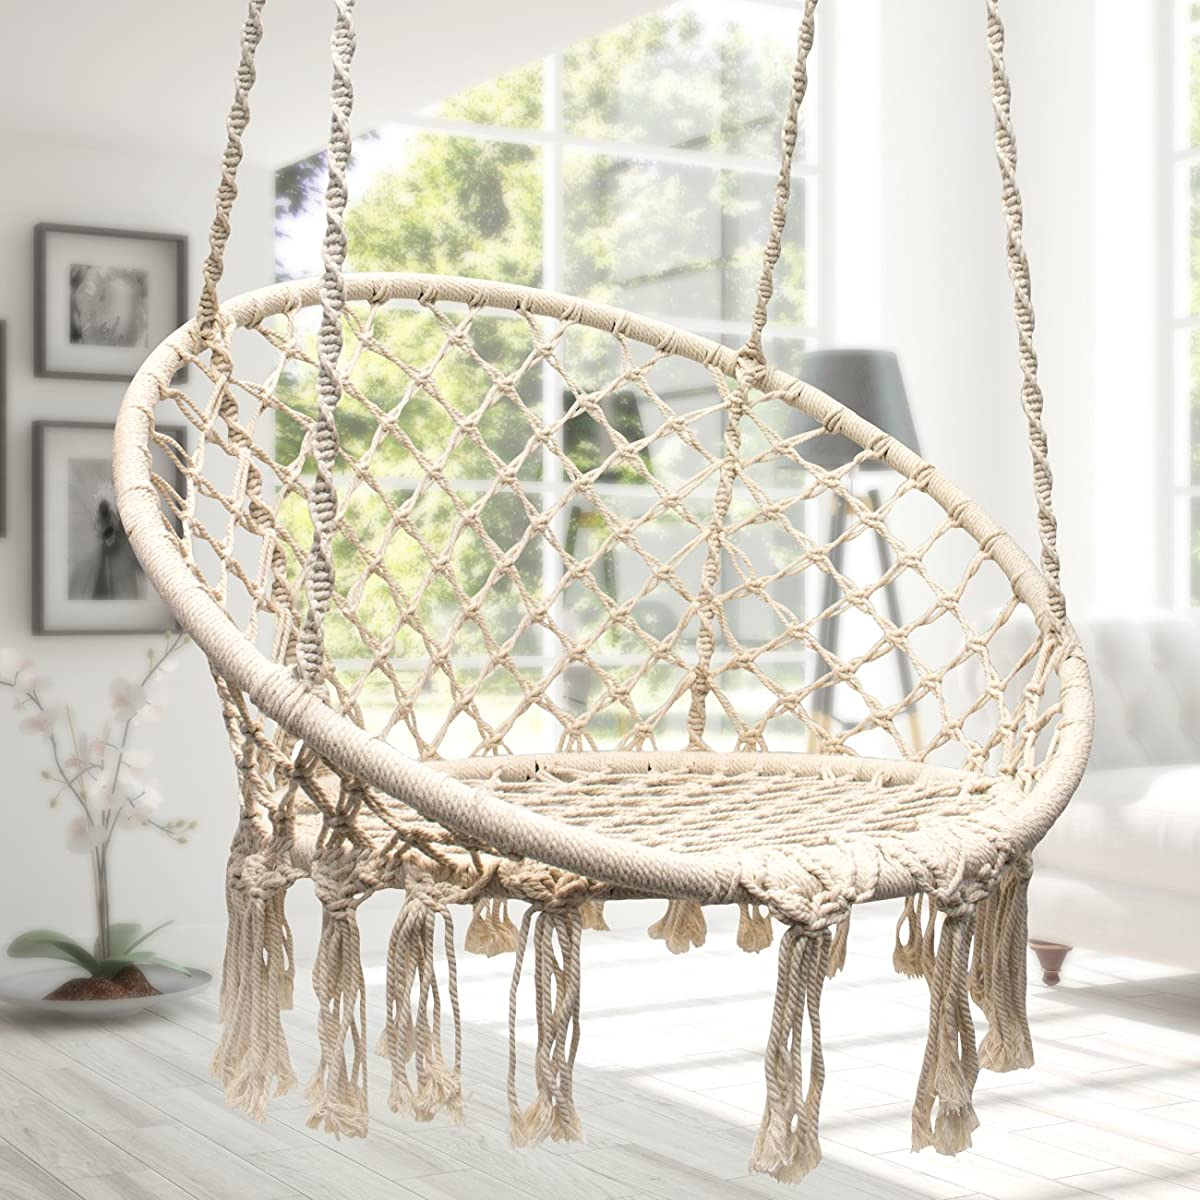 Sorbus Hammock Chair Macrame Swing, 265 Pound 